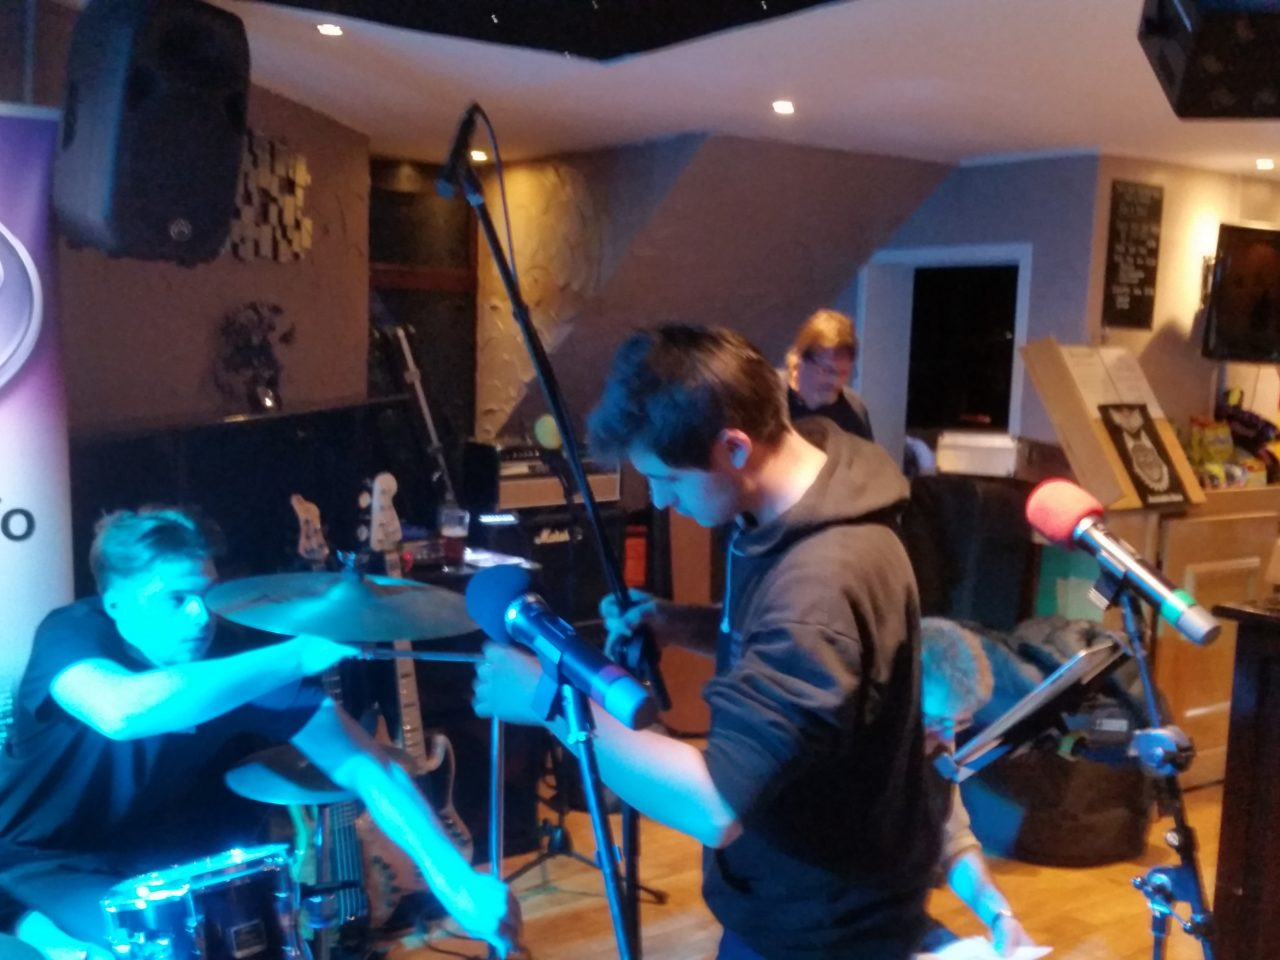 Check out our Band Rehearsal image gallery